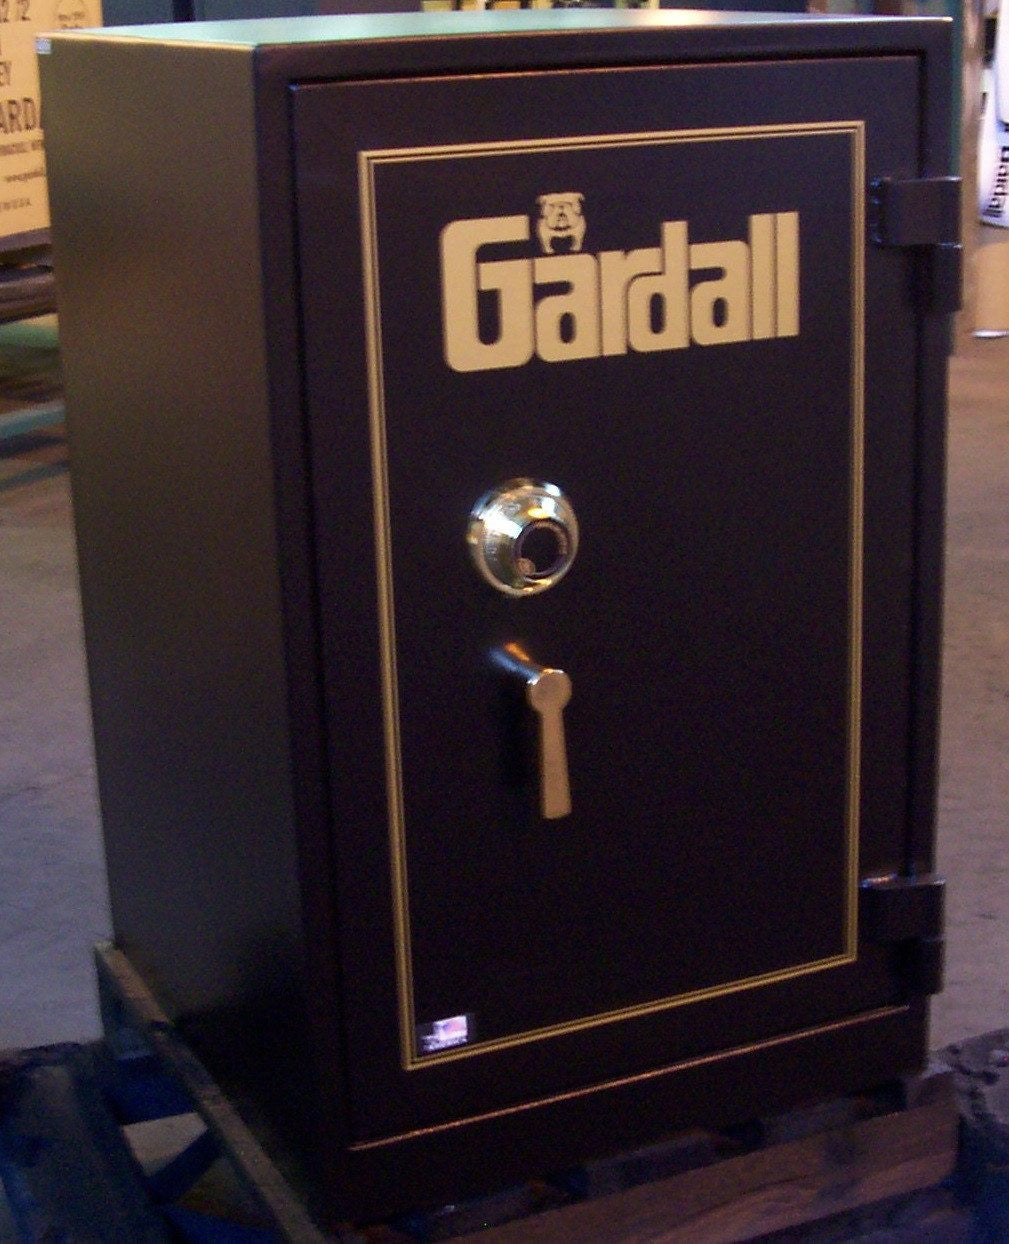 Gardall 1812-2 Burglar & Two Hour Fire Safe